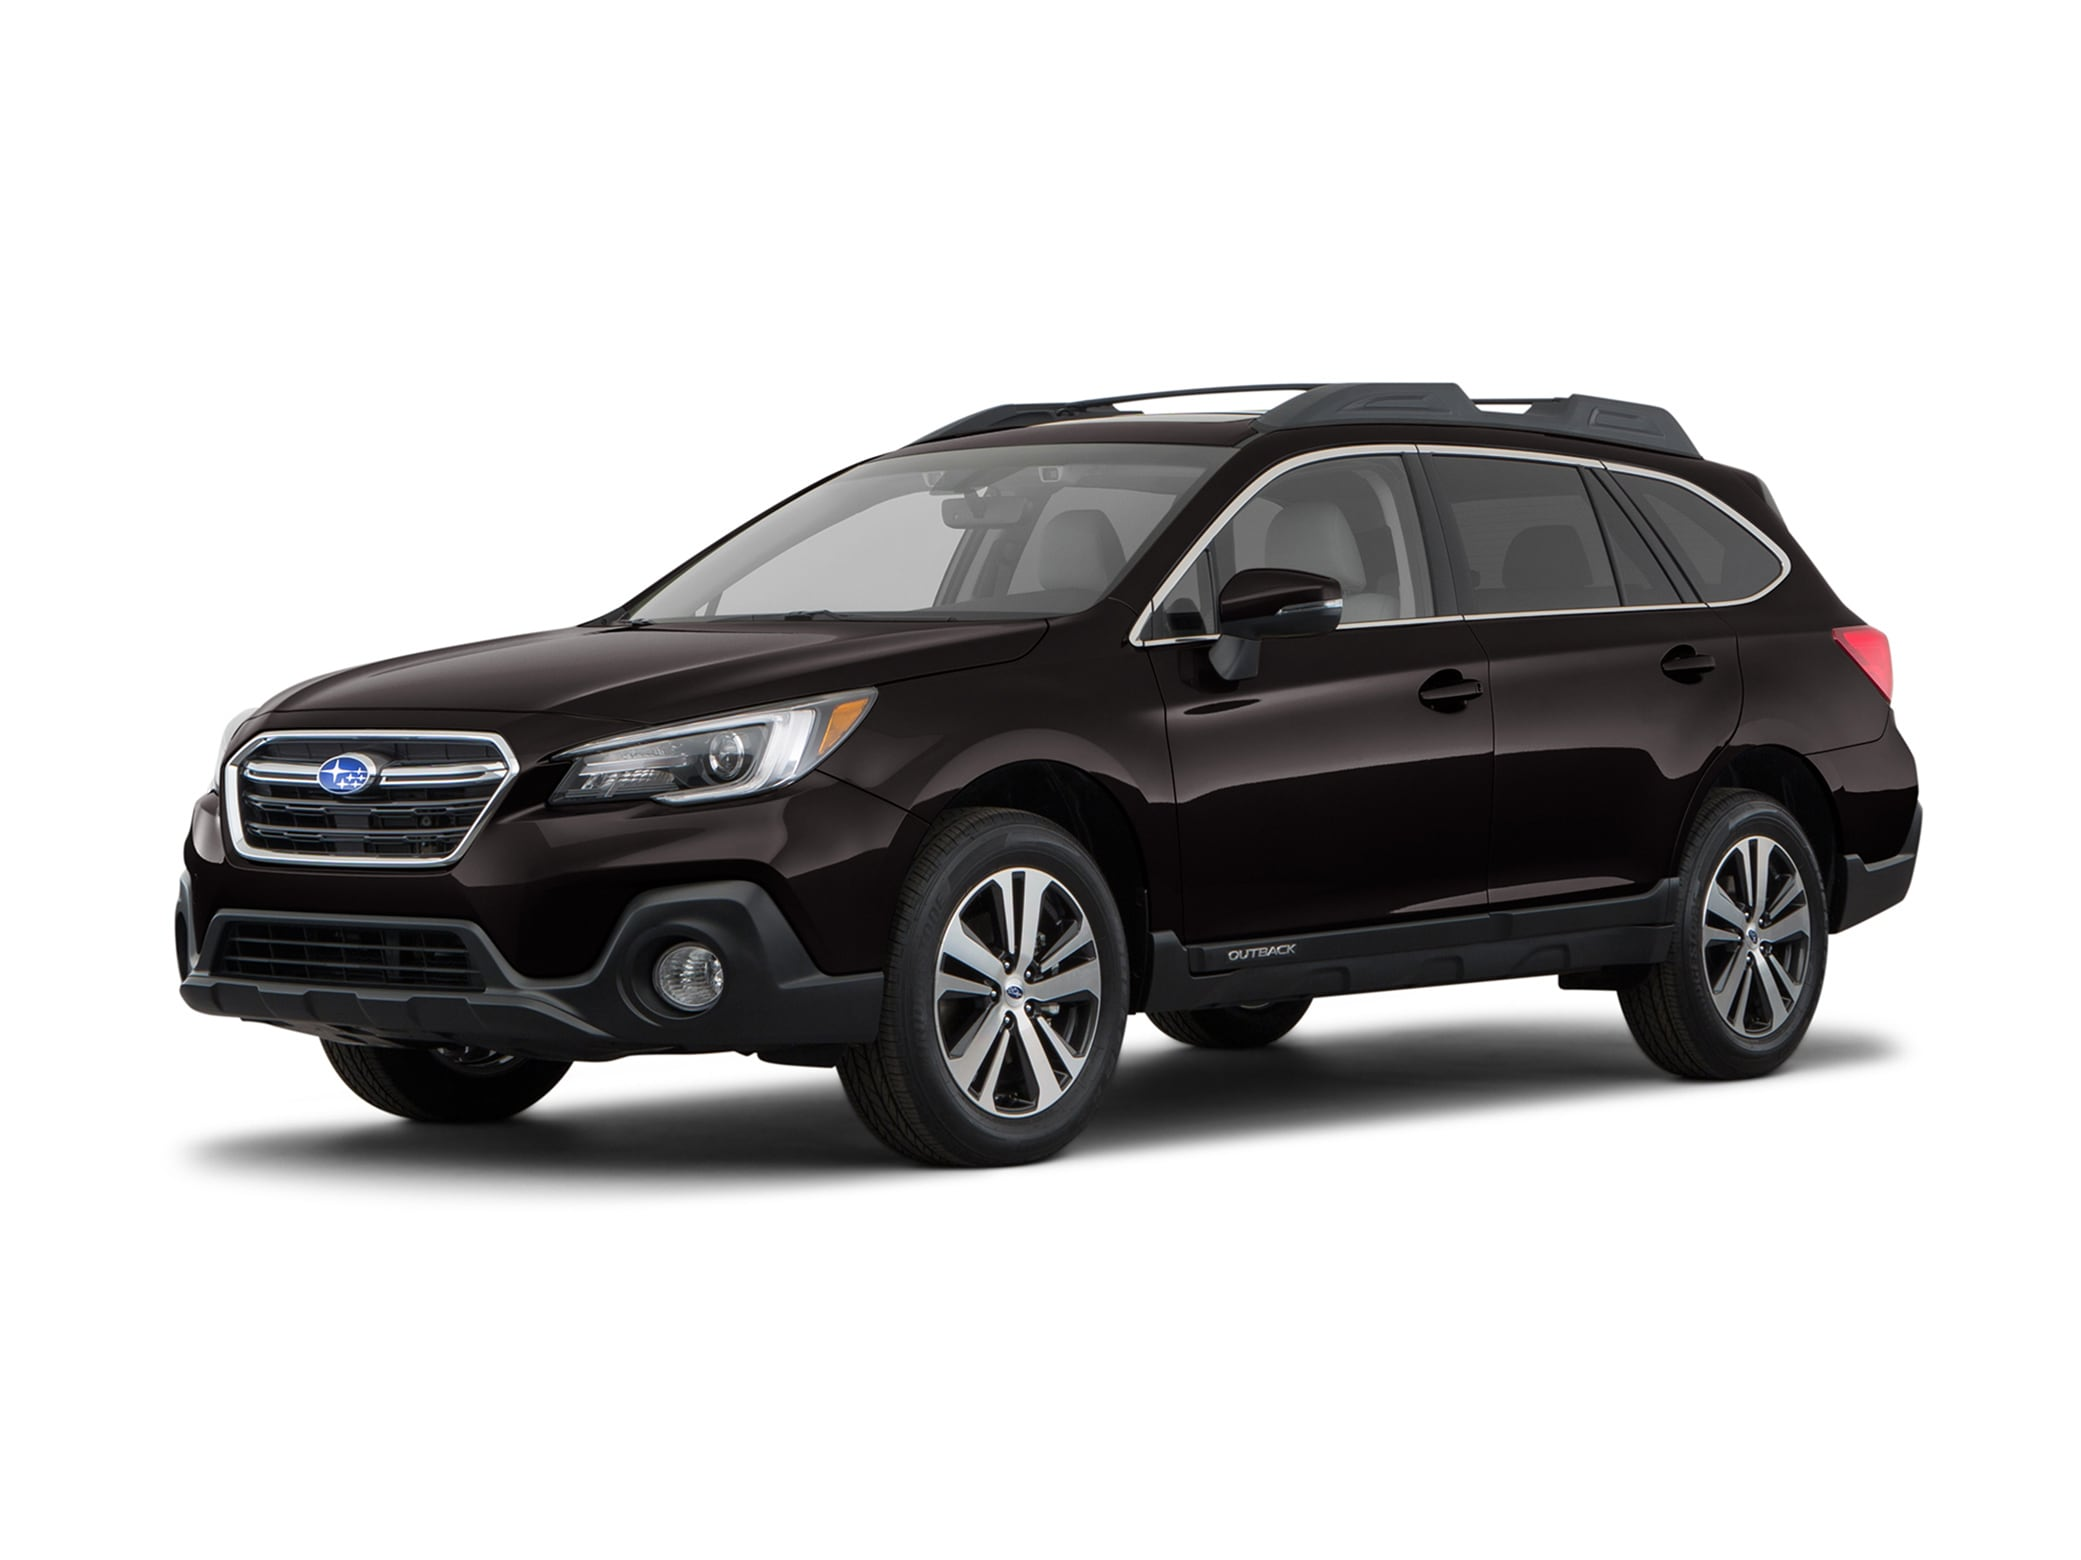 2019 new subaru outback for sale in brooklyn park mn near rh brooklynparksubaru com